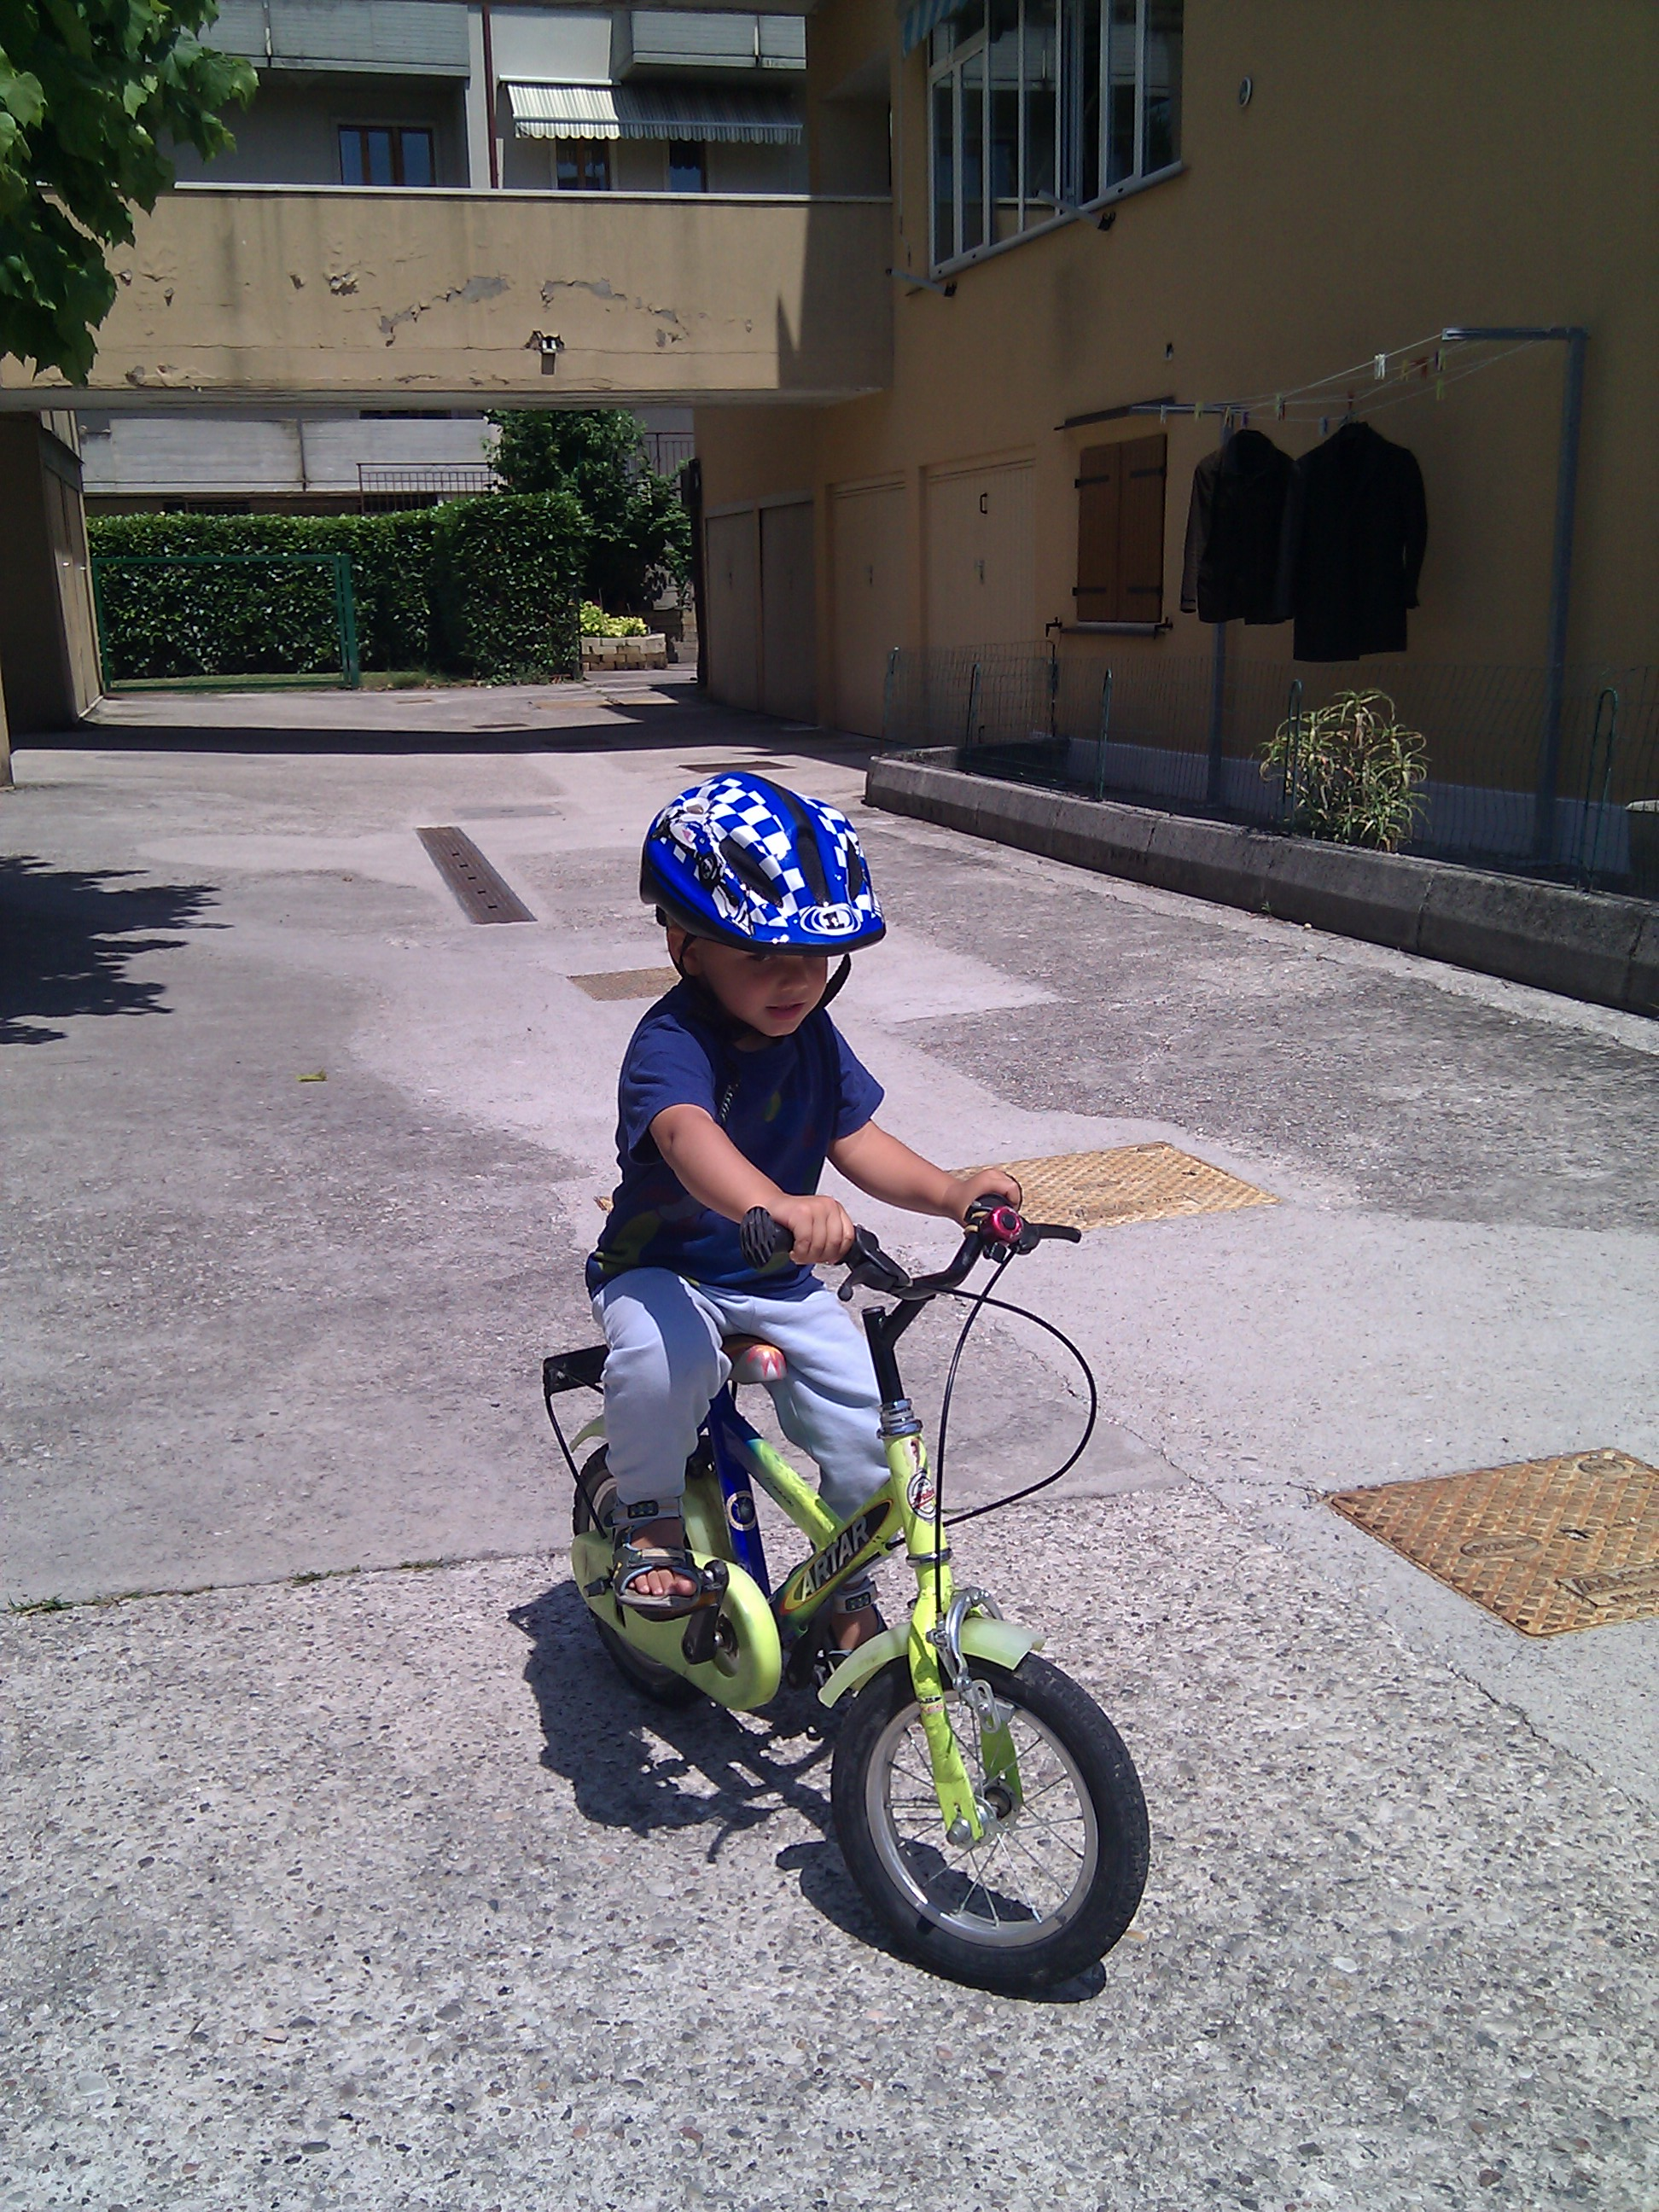 Massimo, still 2, on his bike without traing wheels